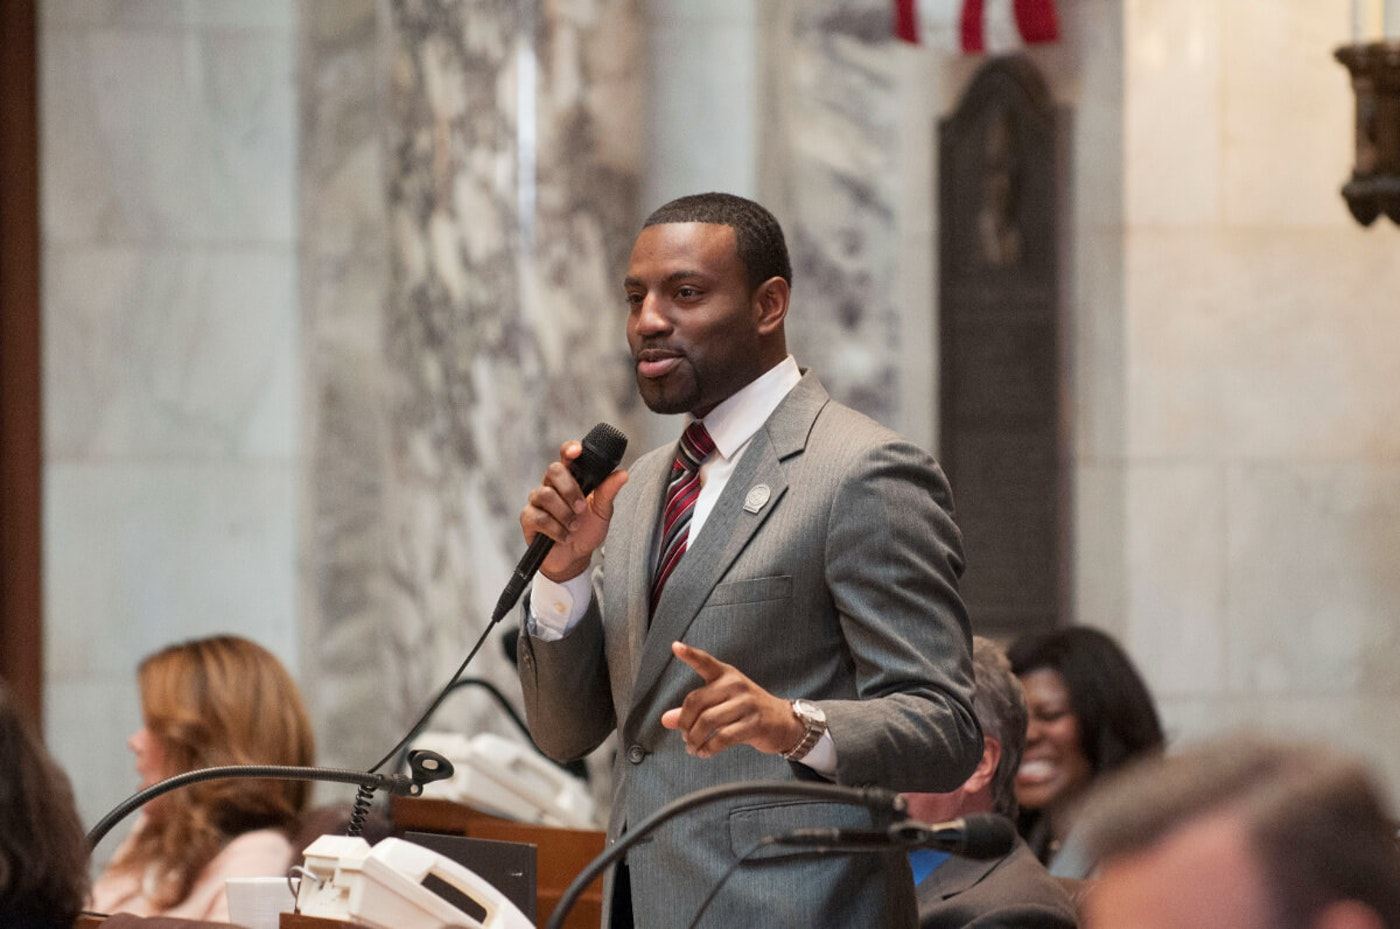 State Rep. David Bowen, D-Milwaukee, announced on Monday that he has tested positive for COVID-19. (Photo courtesy  Rep. Bowen's office)